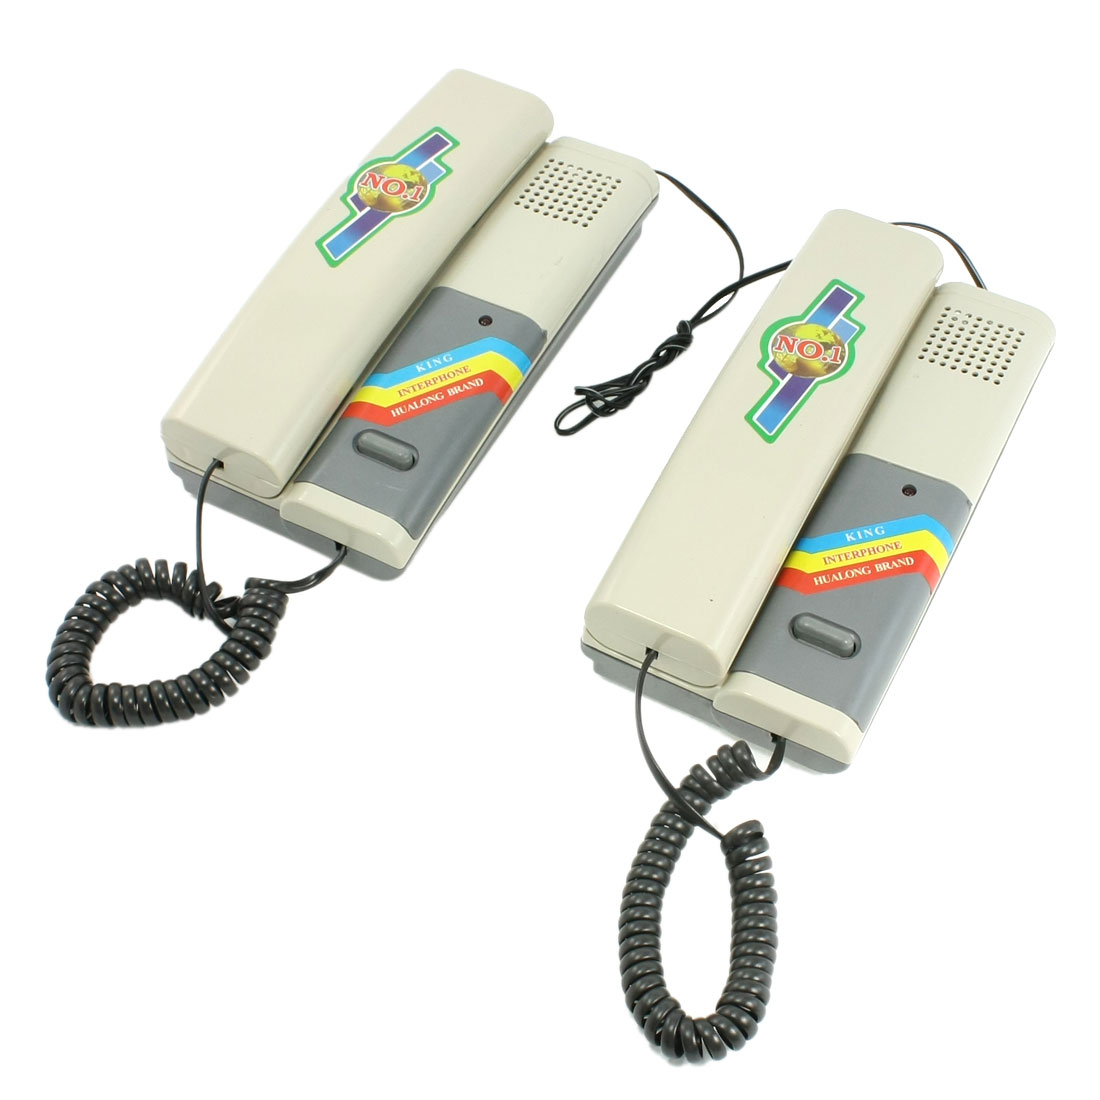 Pair Home Security Gray Plastic Wired Handset Intercom Phone Telephone Gray